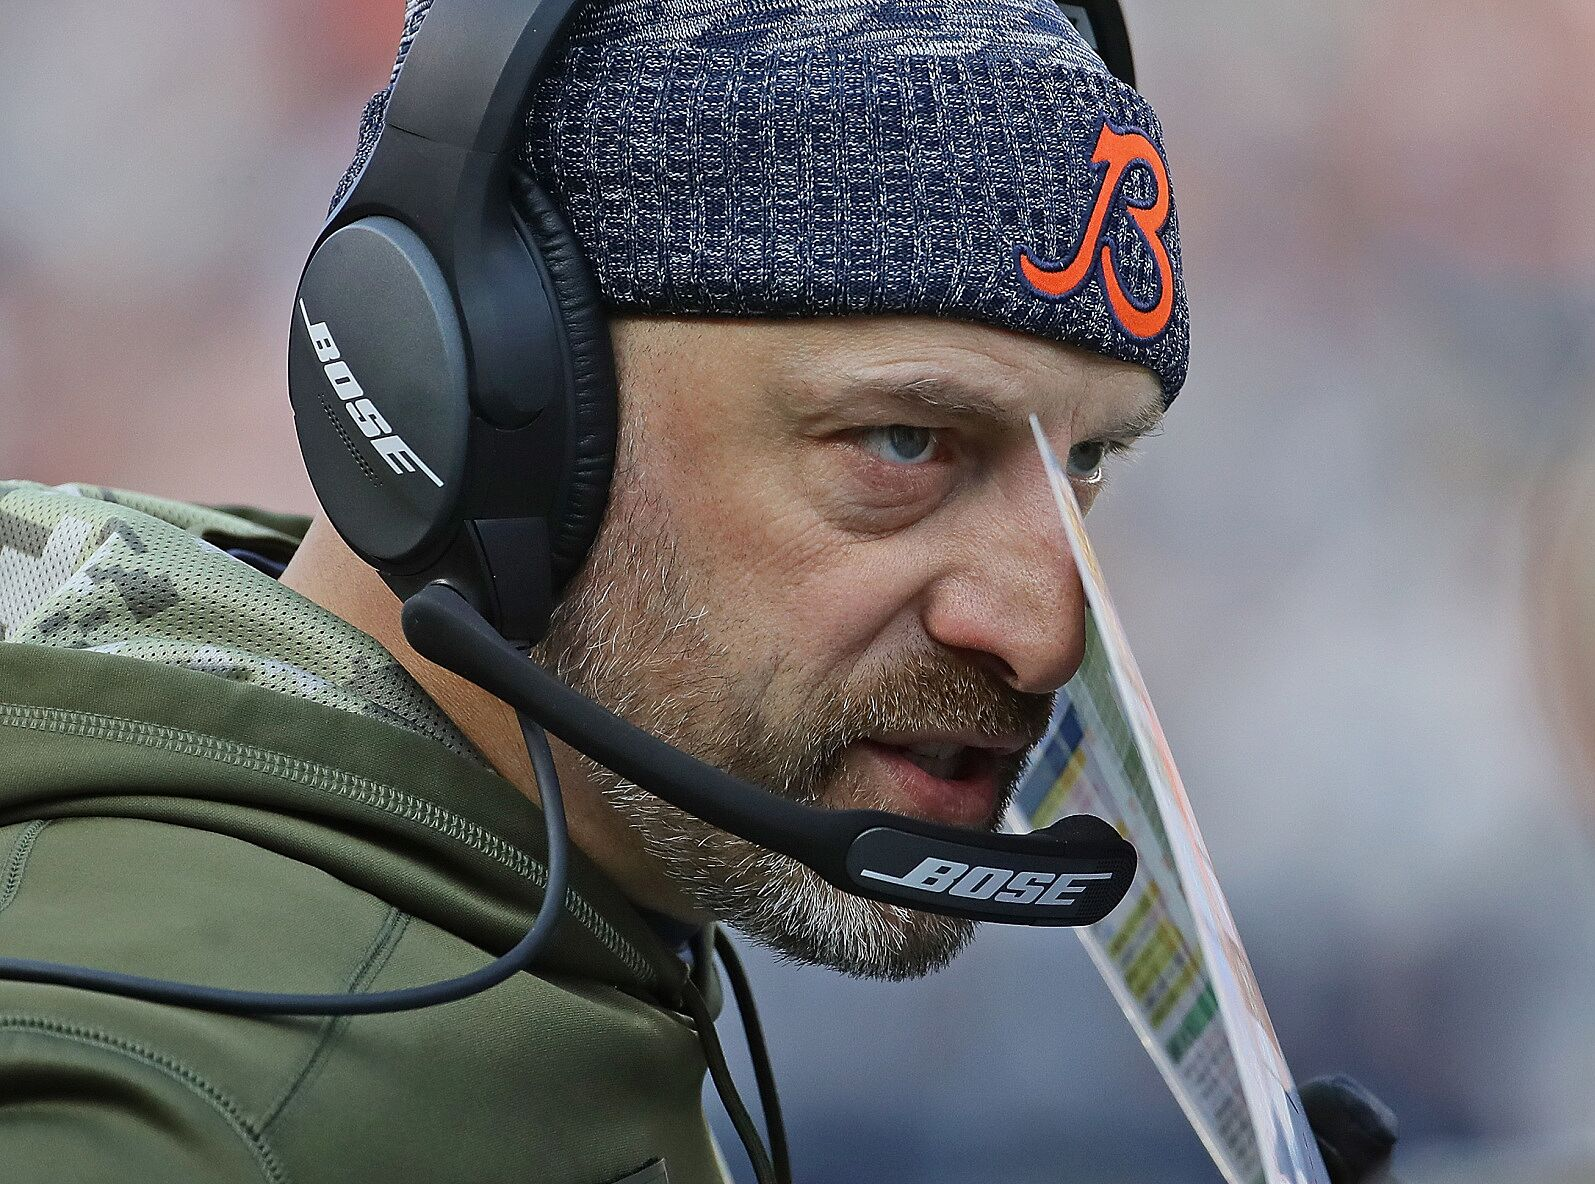 f1d44f93f CHICAGO, IL – NOVEMBER 11: Head coach Matt Nagy of the Chicago Bears talks  on the headphones during a game against the Detroit Lions at Soldier Field  on ...